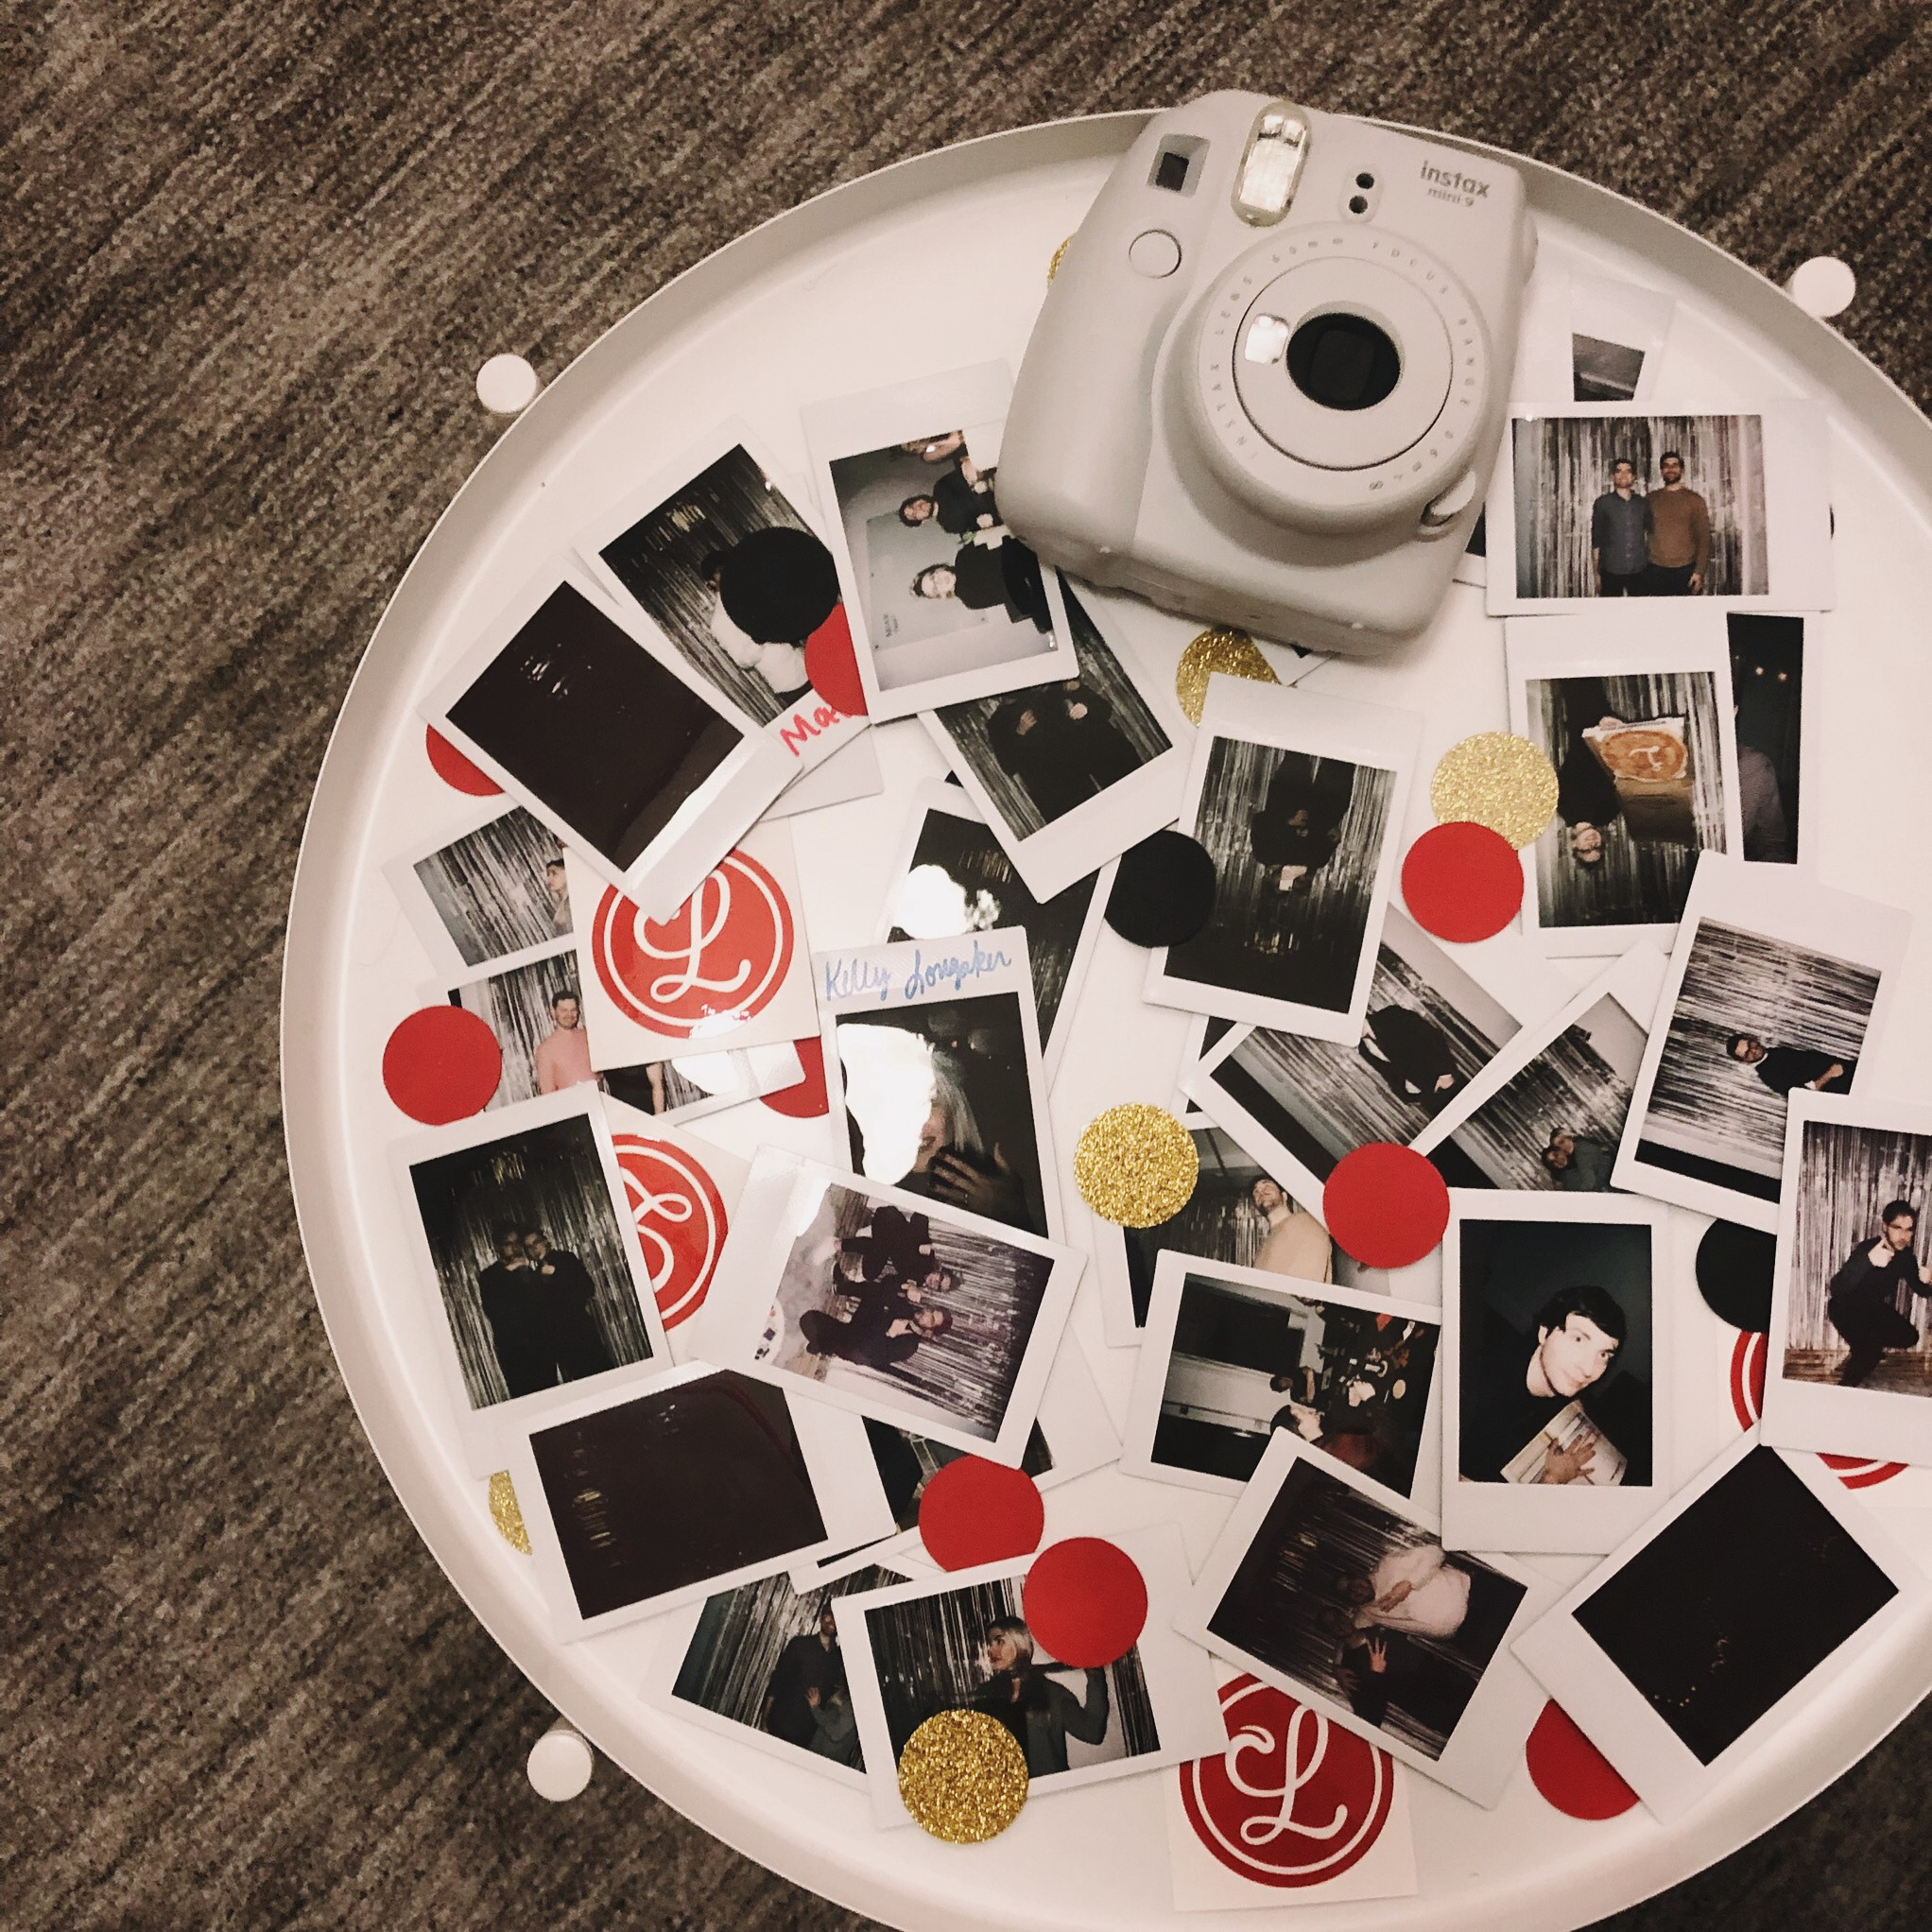 A bunch of instant photos sitting on a table with an Instax camera.